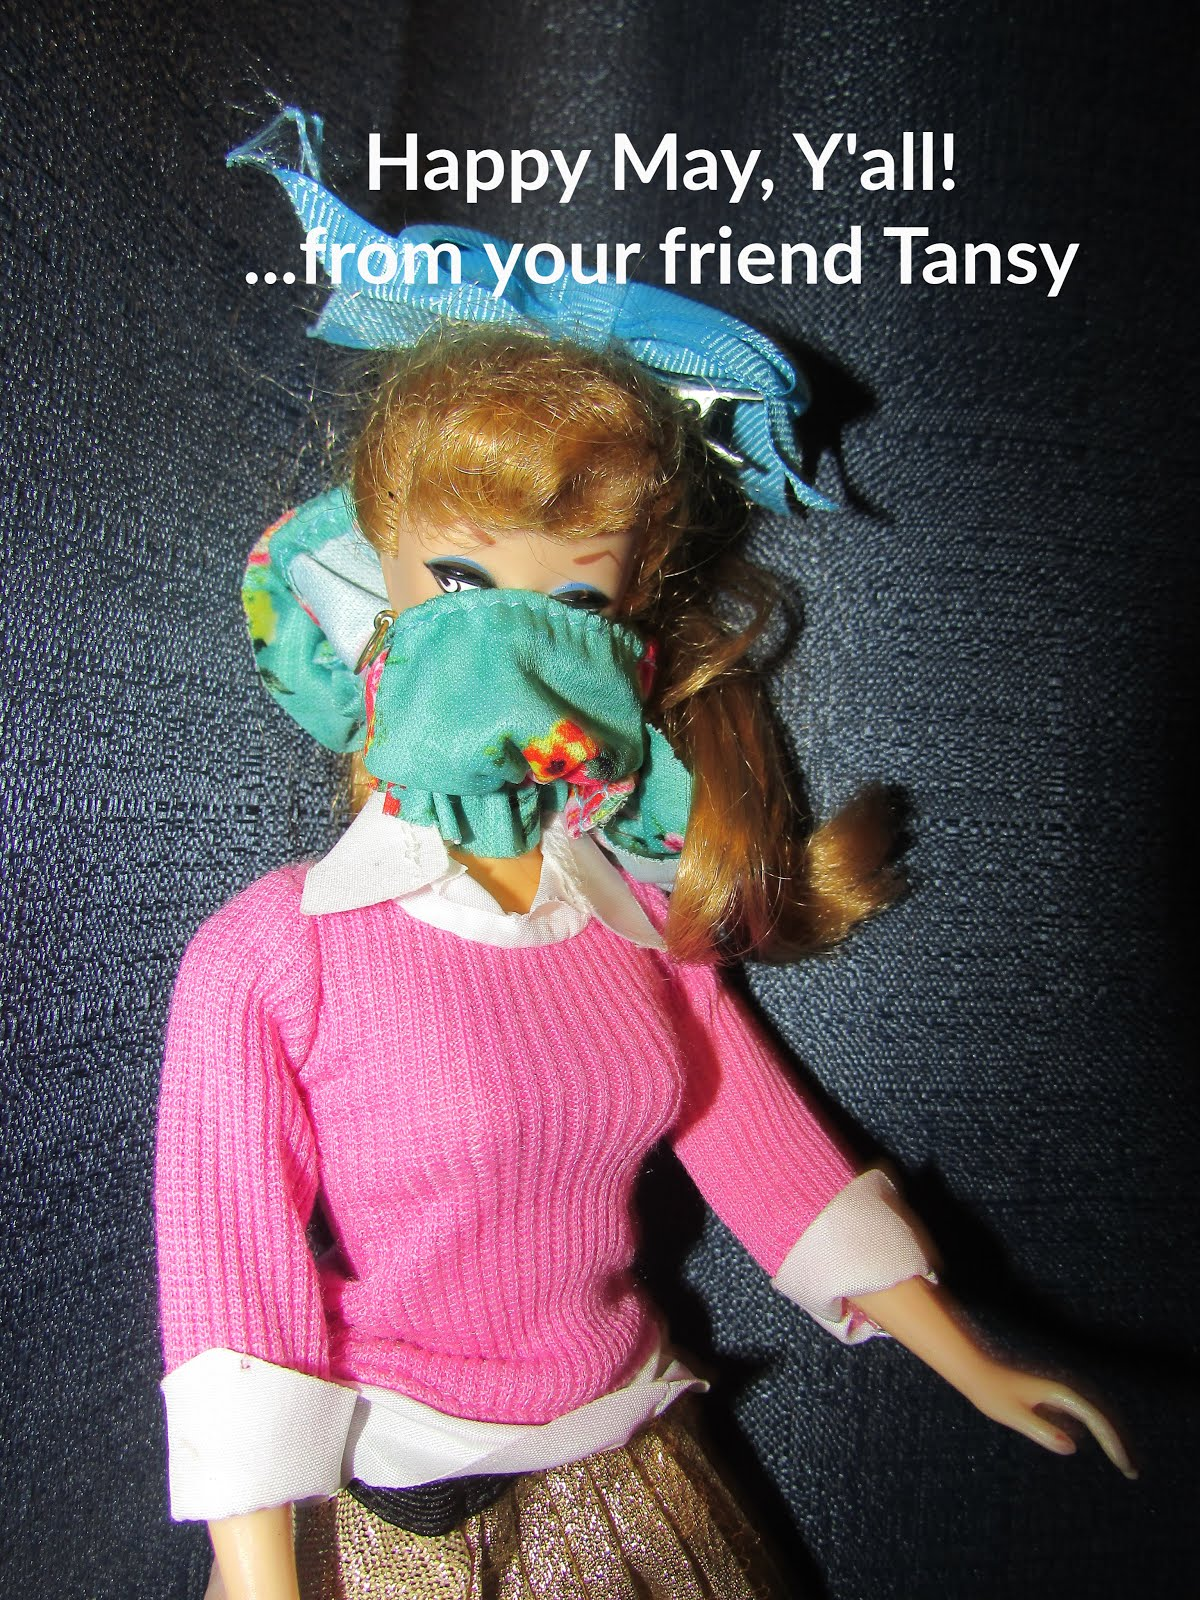 """Wash hands, wear mask, be safe, stay healthy"" says Tansy"